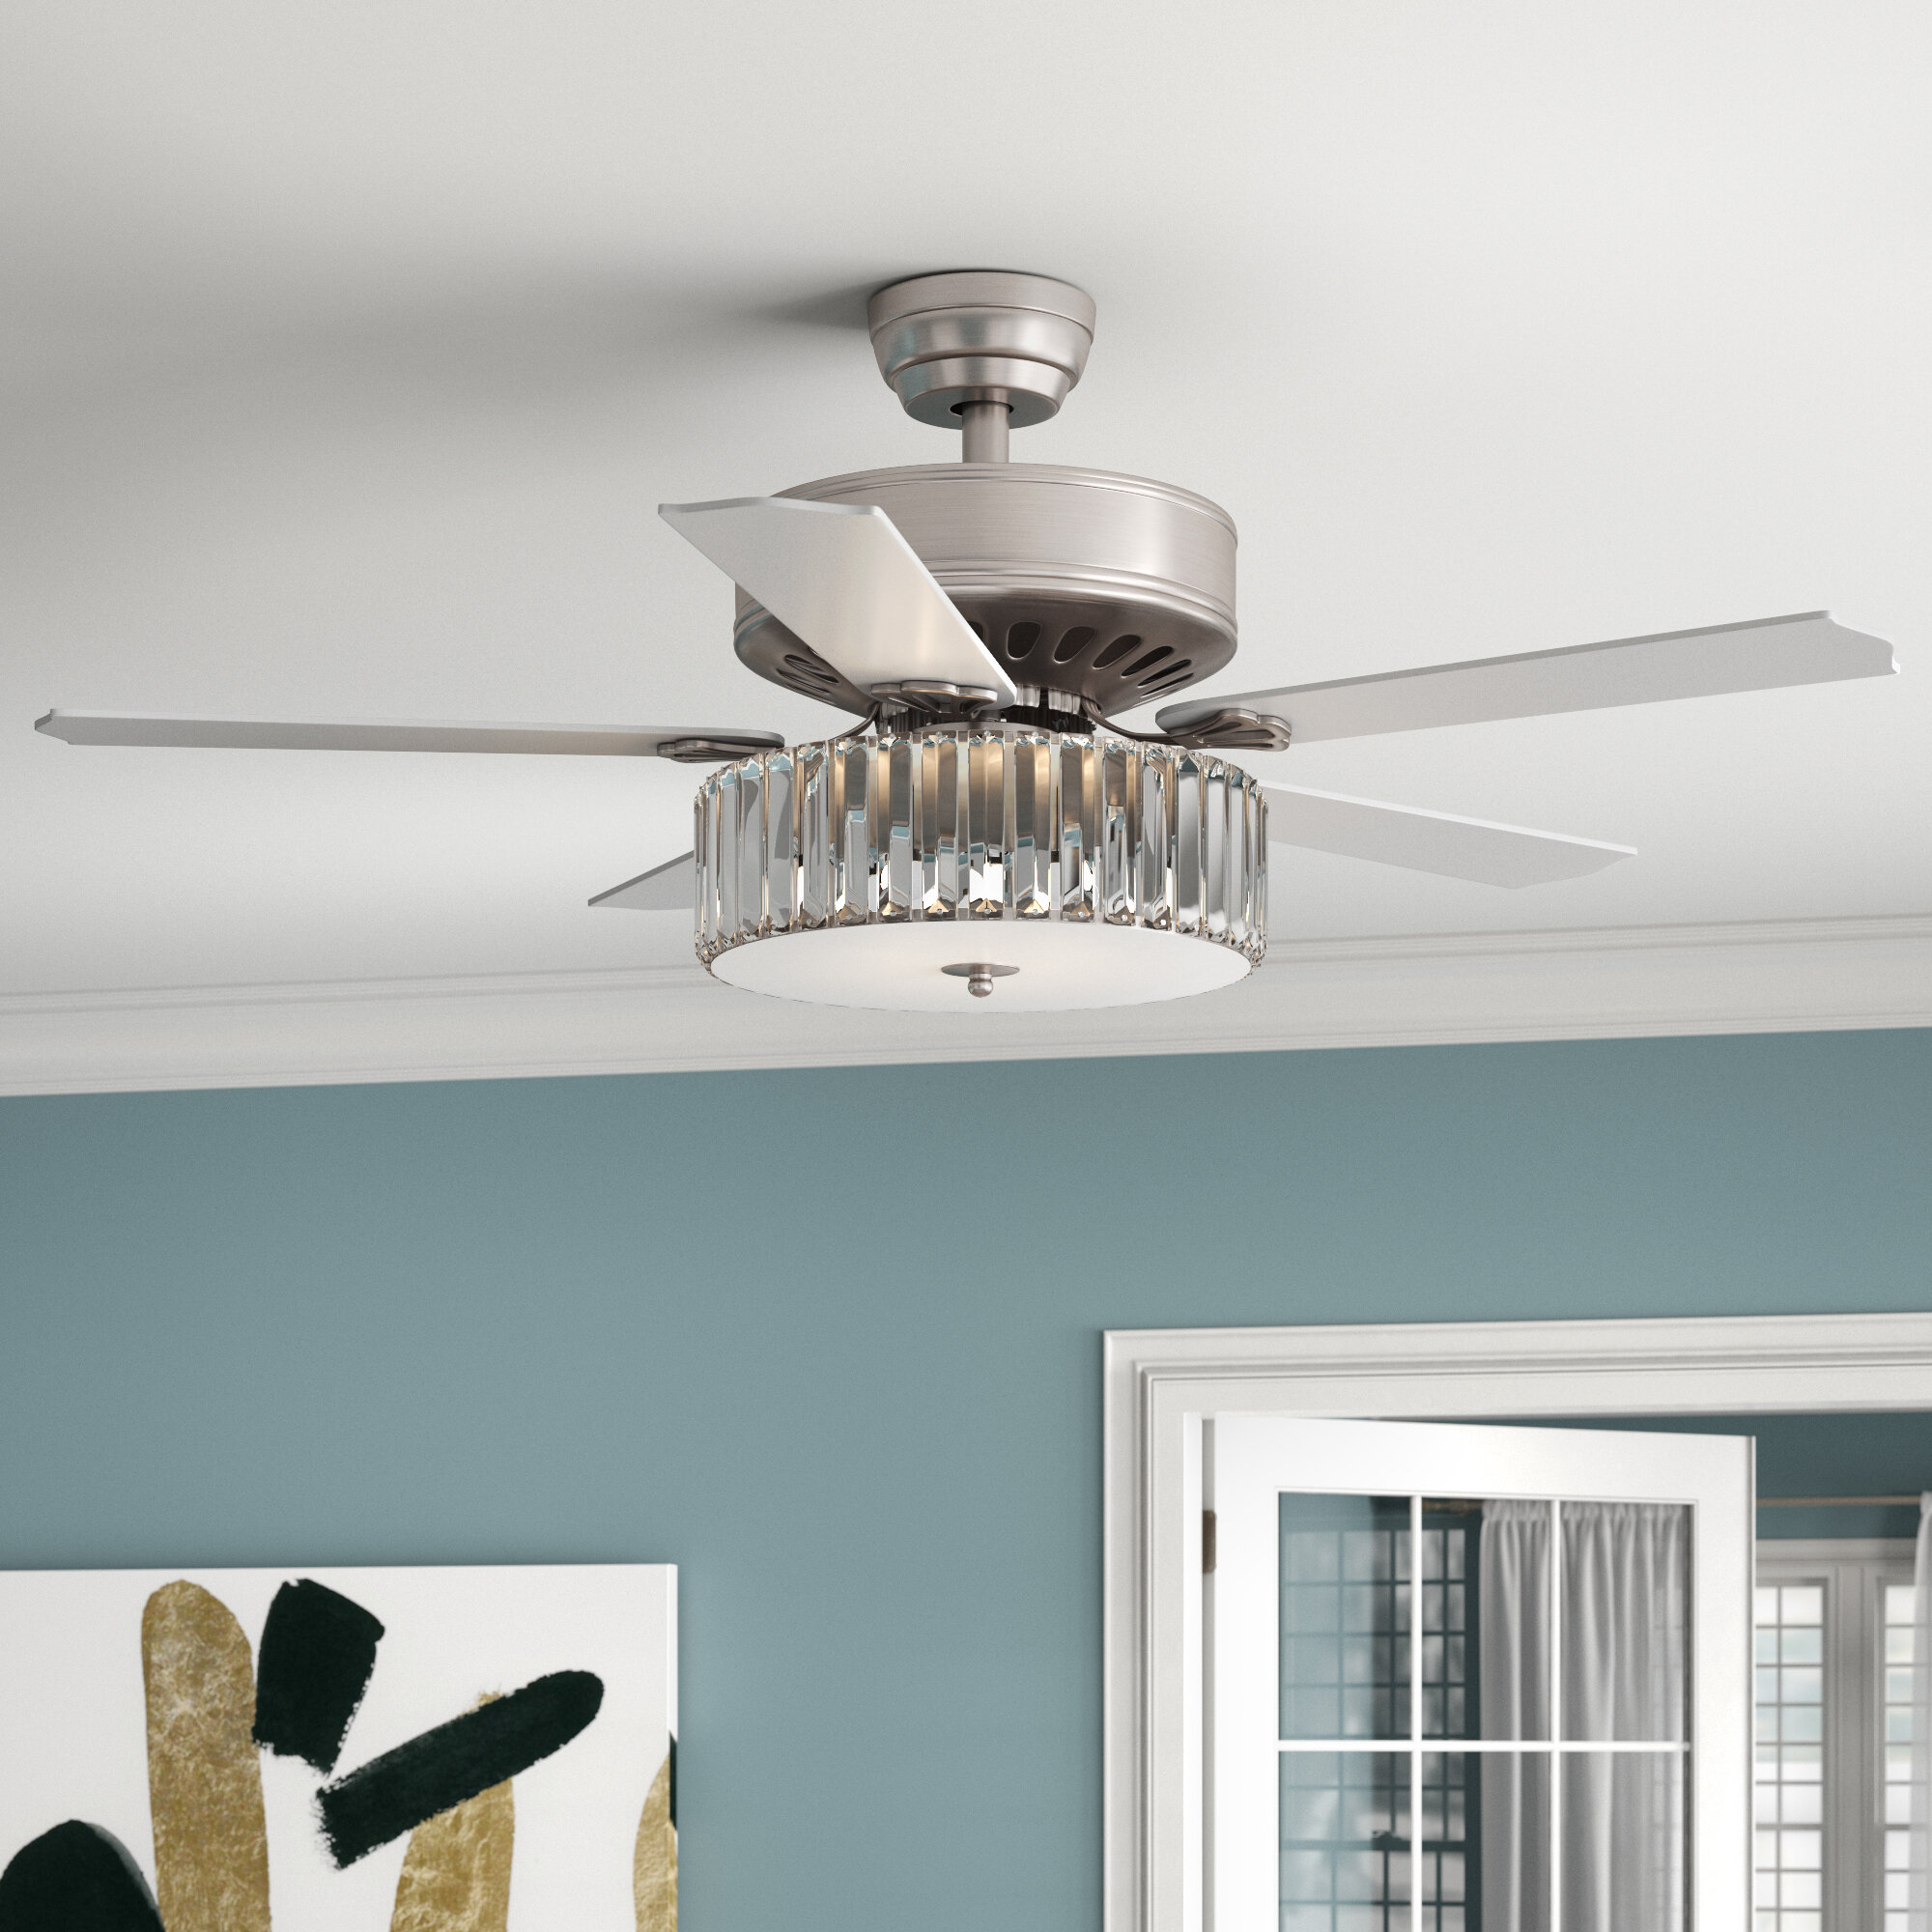 52 Dixie Crystal 5 Blade Ceiling Fan